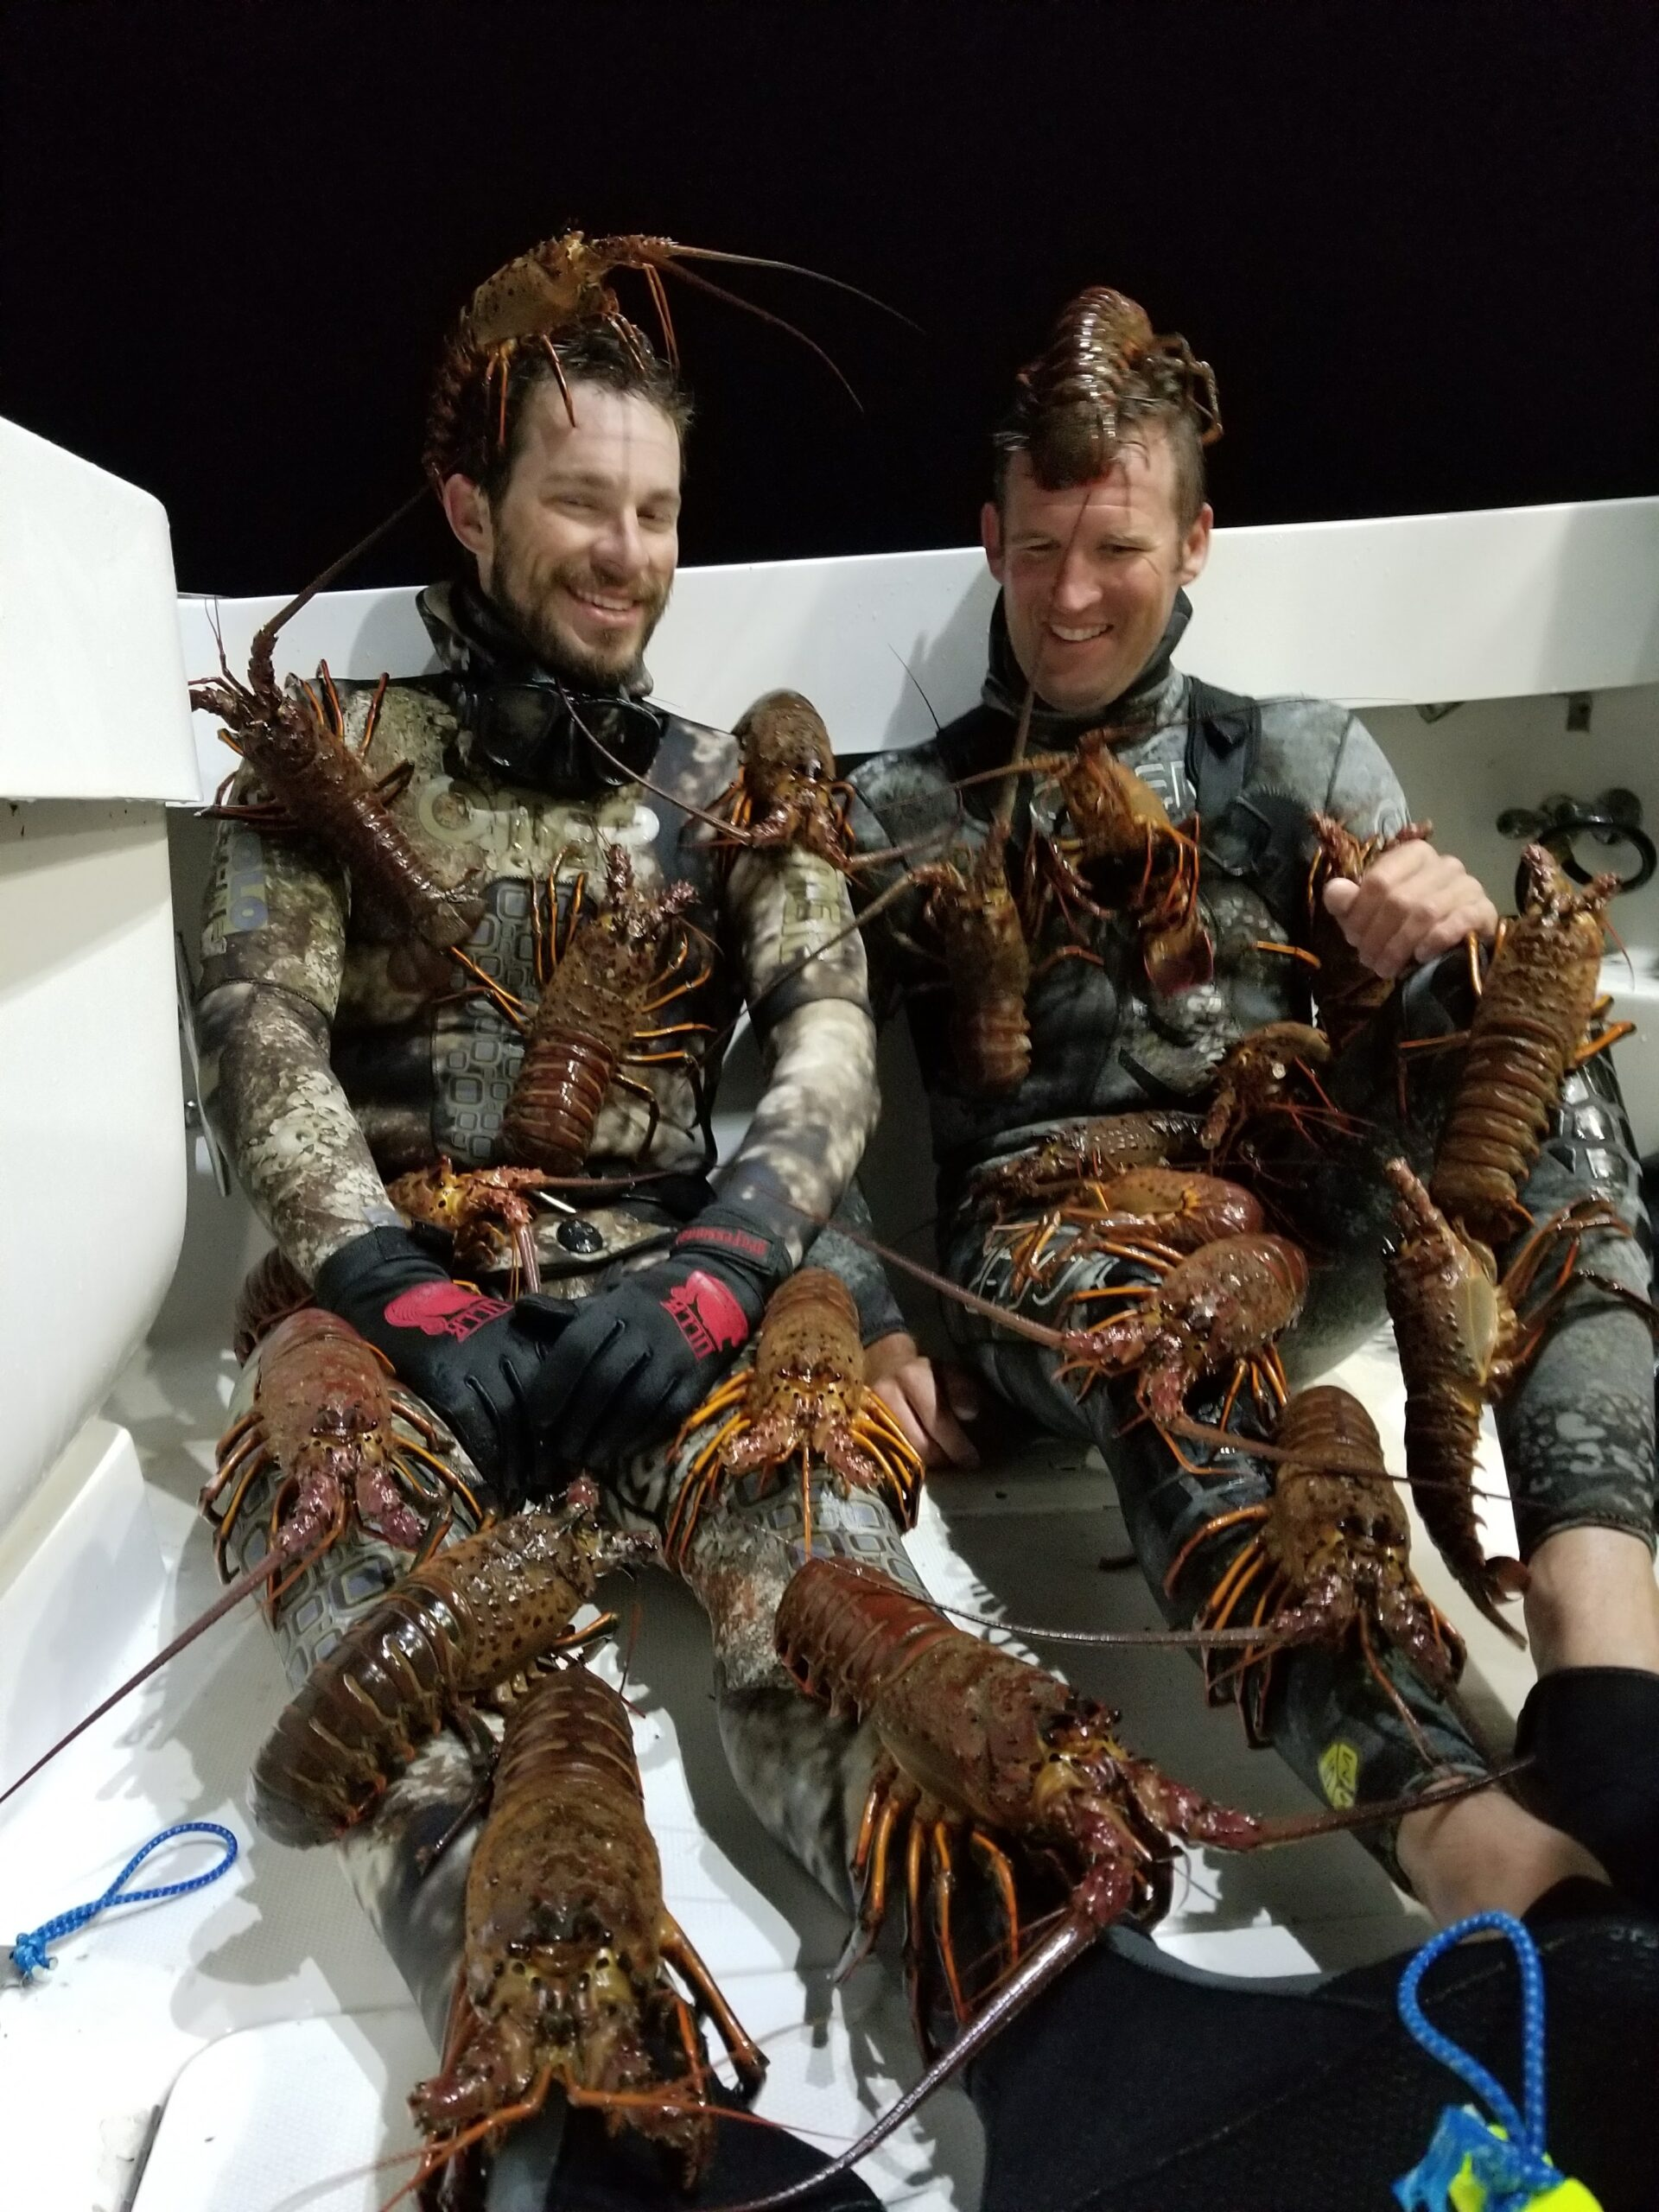 Divers covered in lobsters